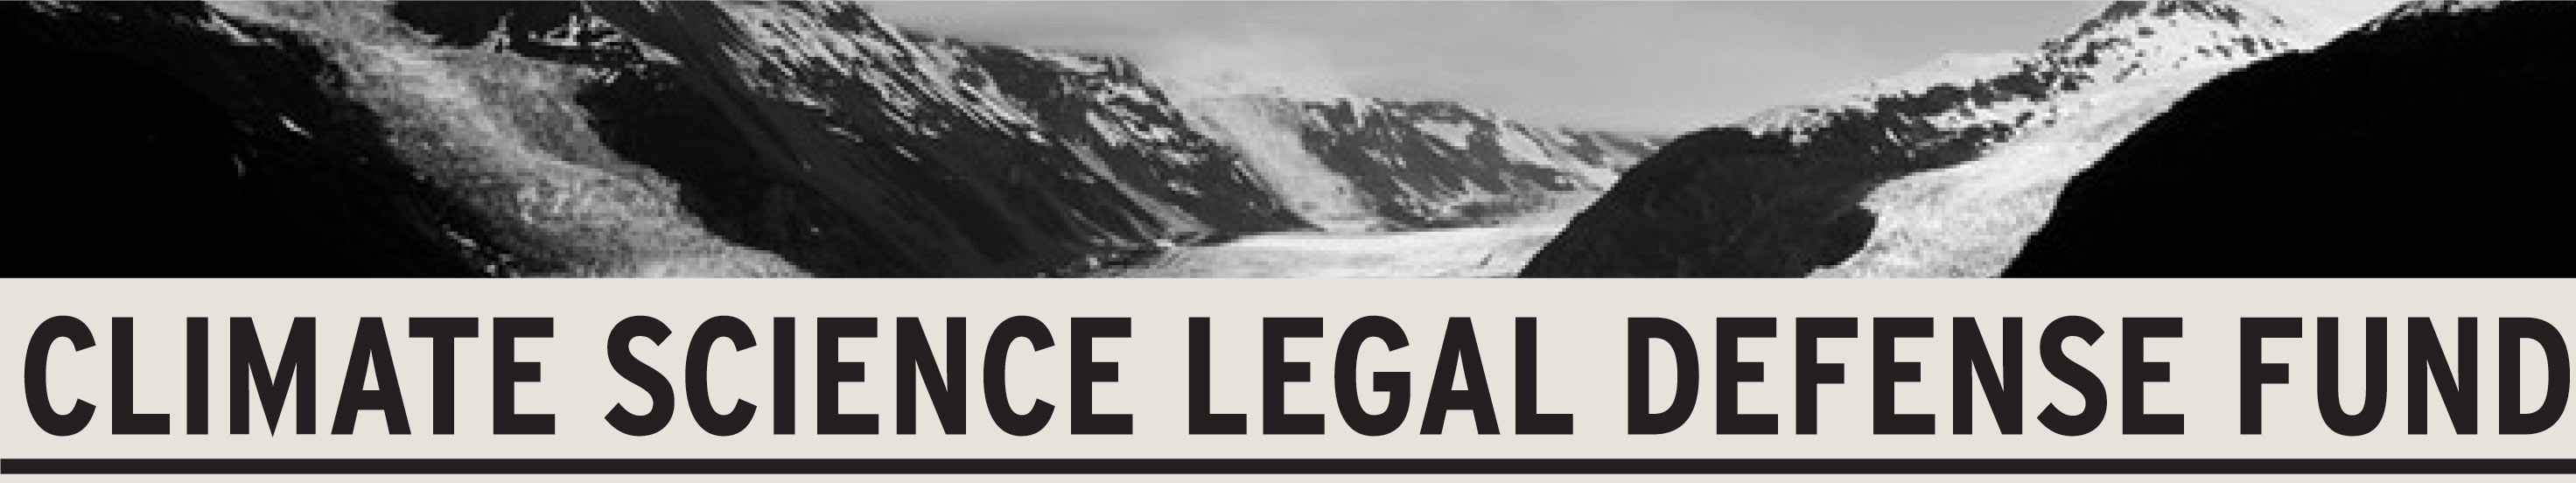 the Climate Science Legal Defense Fund